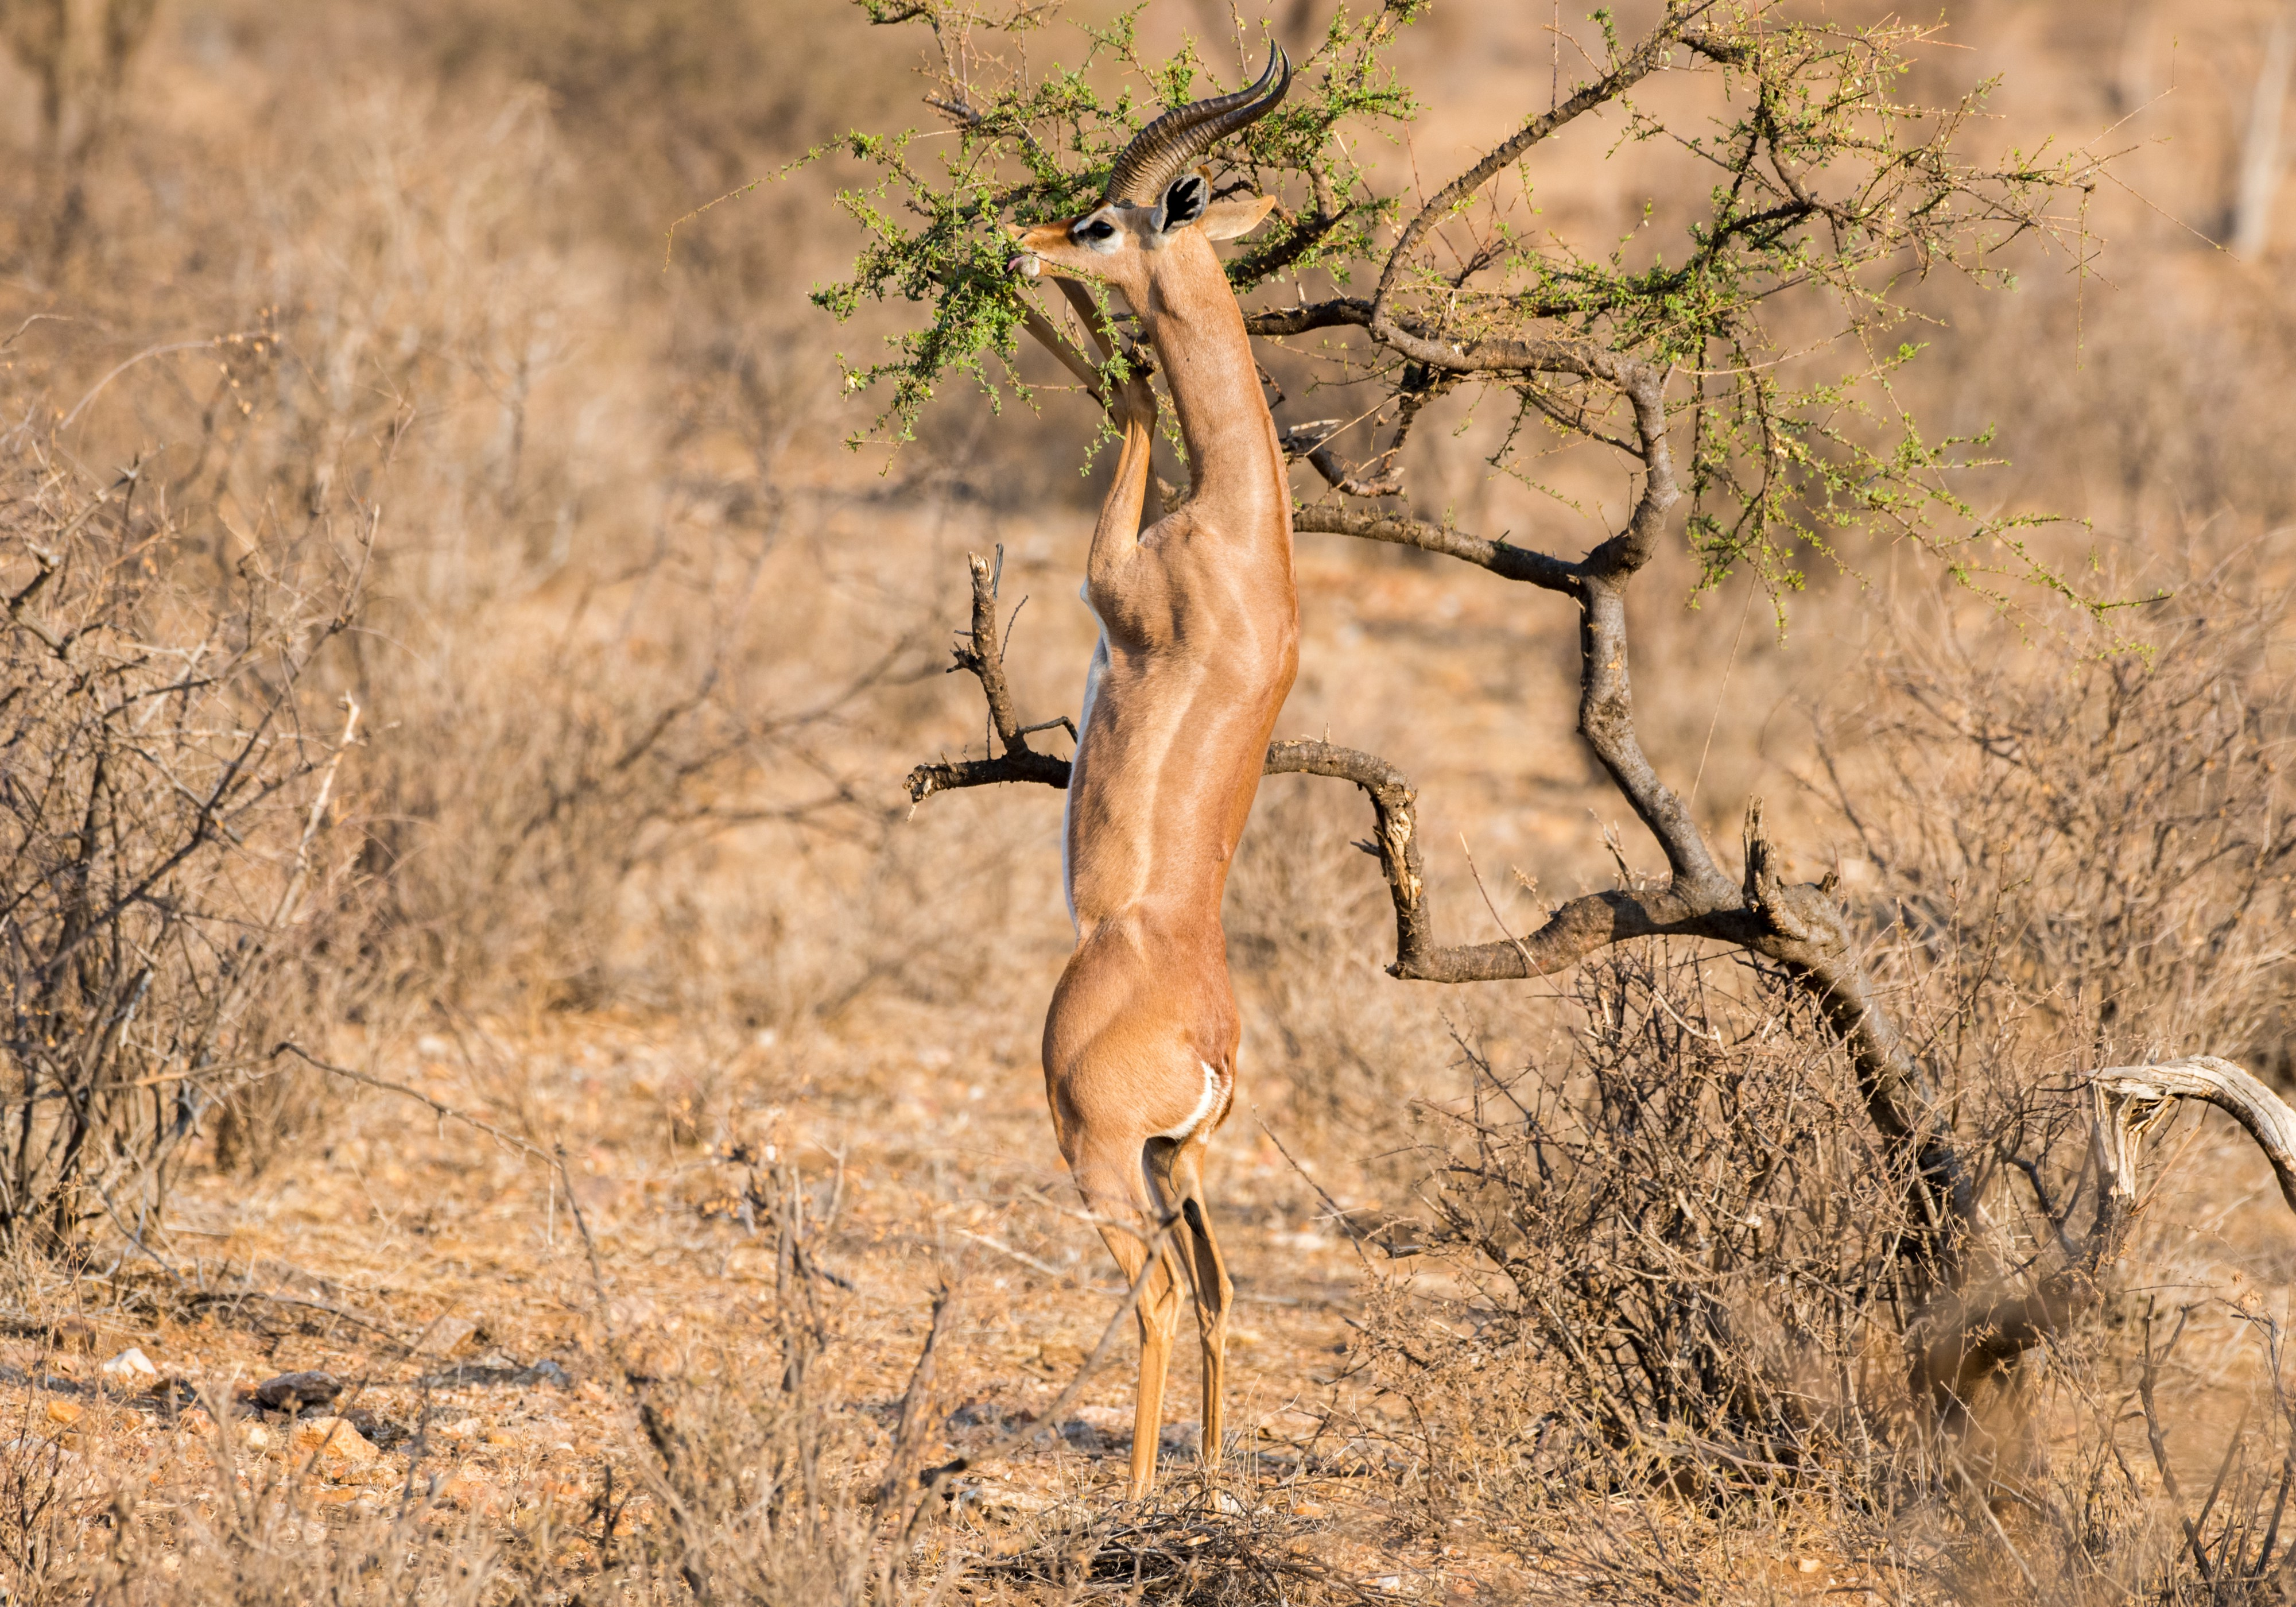 an antelope type creature with a very long, thick neck and short back legs, reaching for a tall bit of greenery